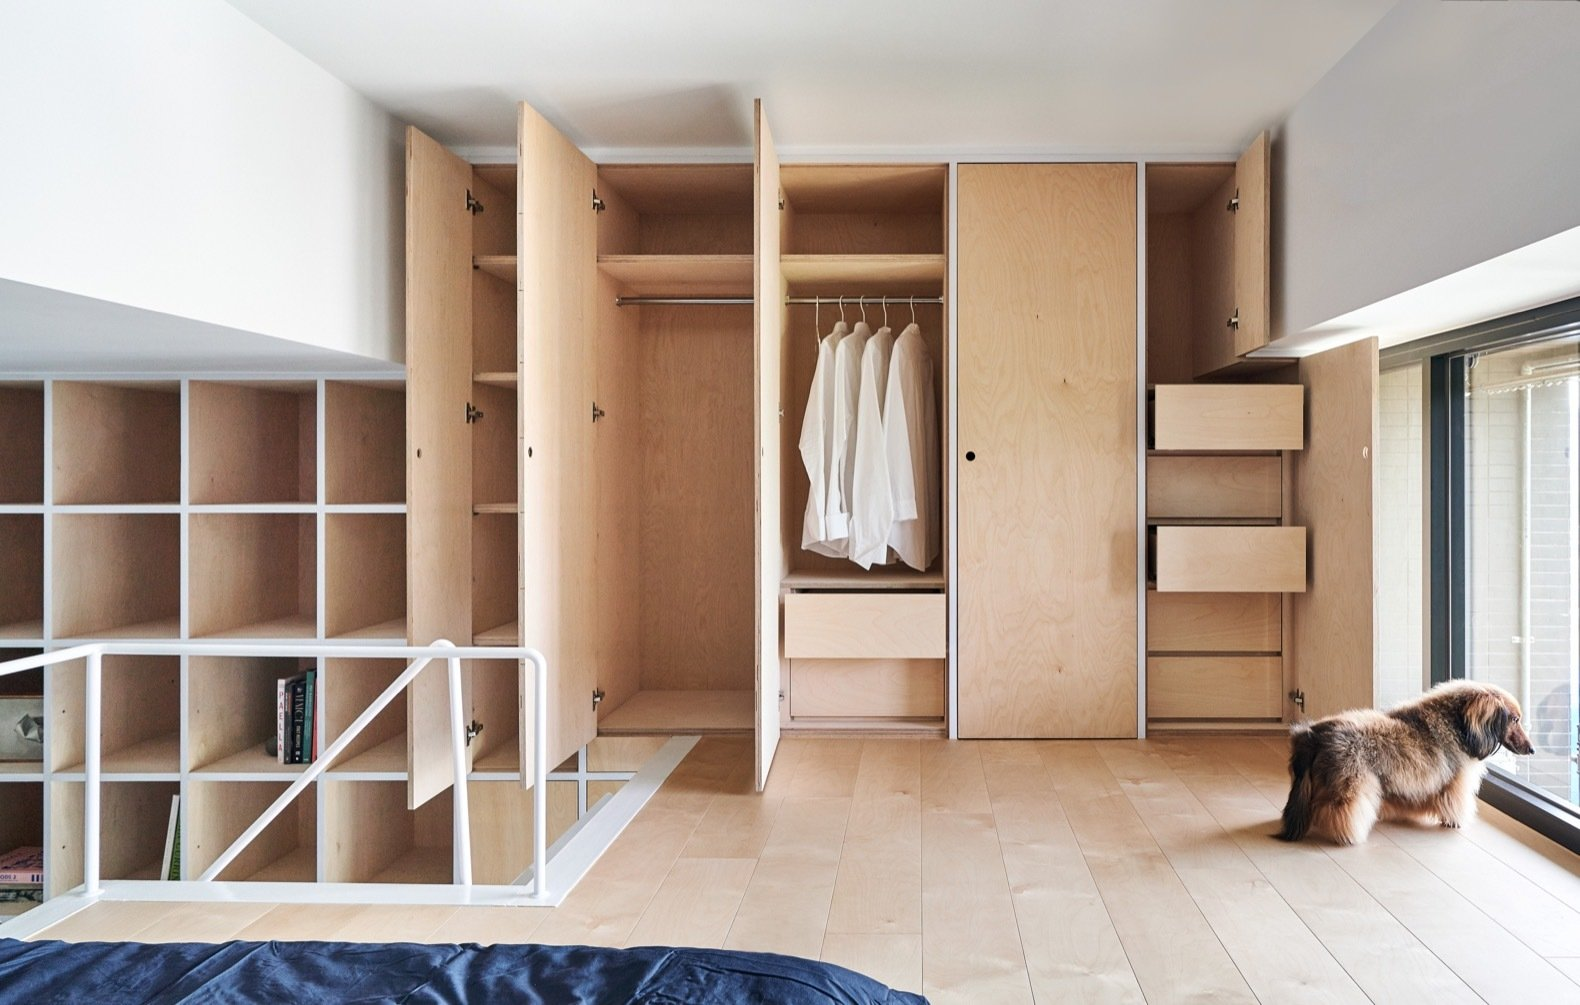 A Taipei Microapartment Inspired By Muji On A 35k Budget